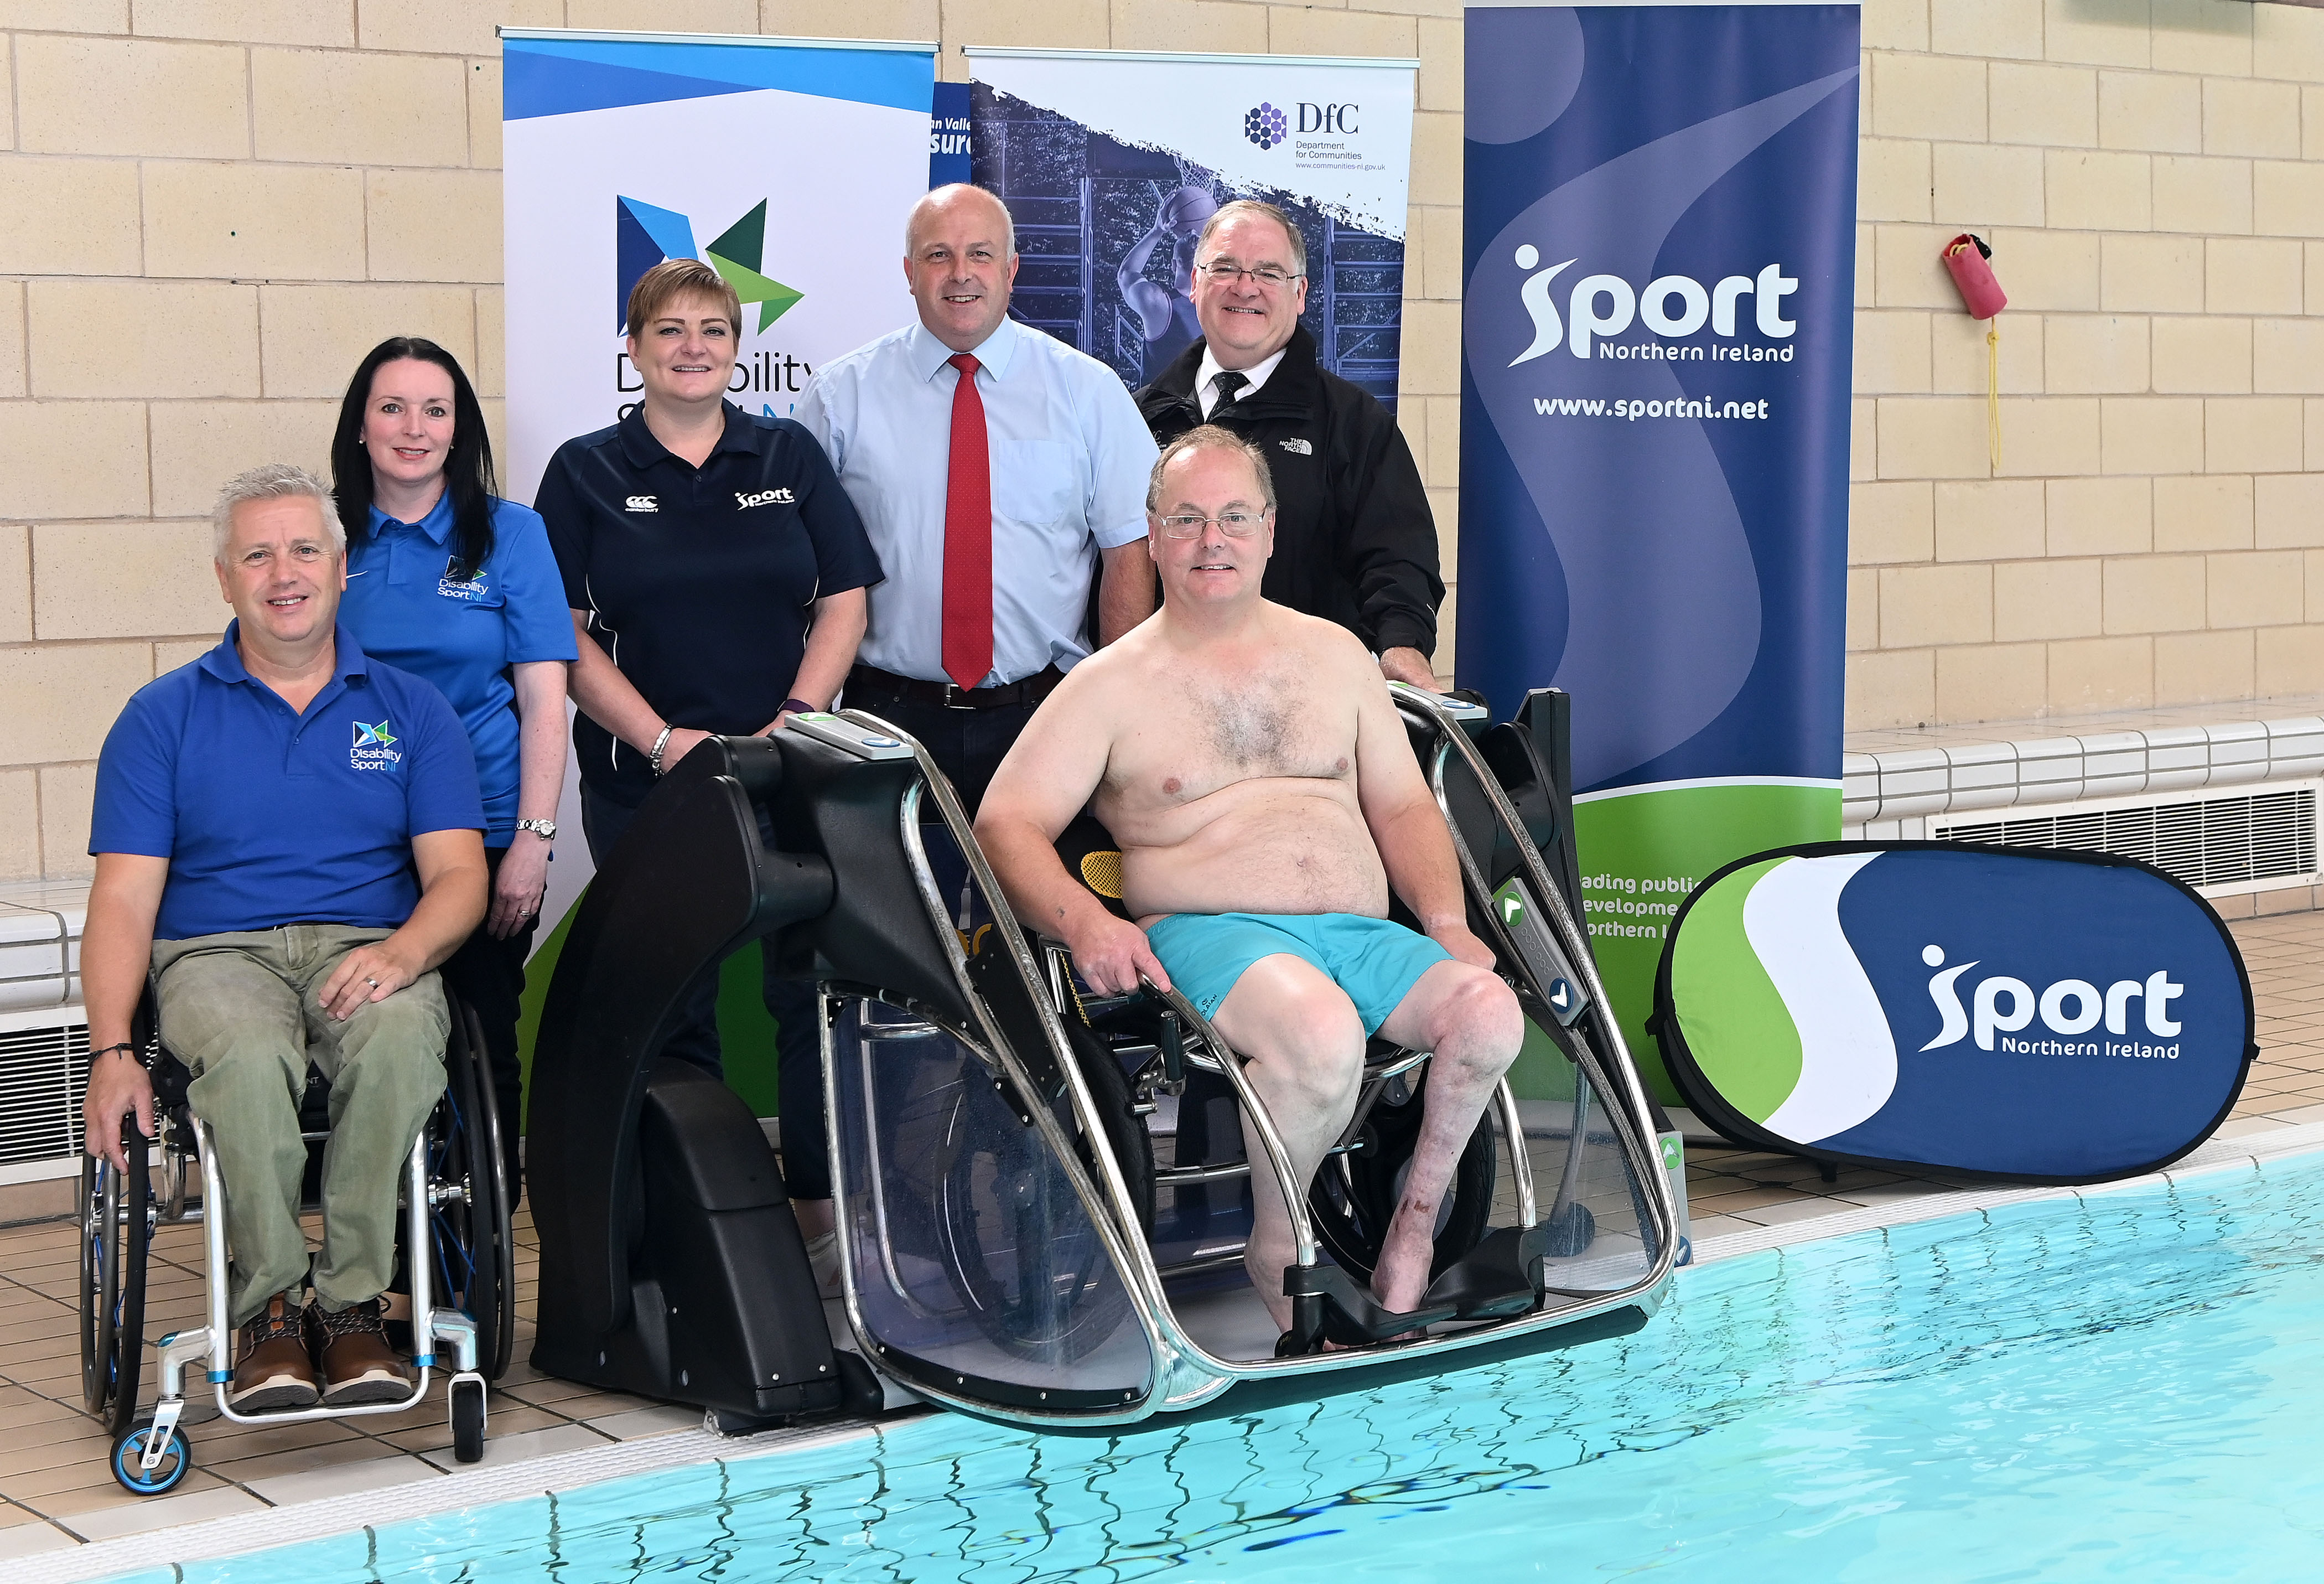 An image of representatives from the council, Sport NI and Department for Communities at the Poolpod with a pool user.